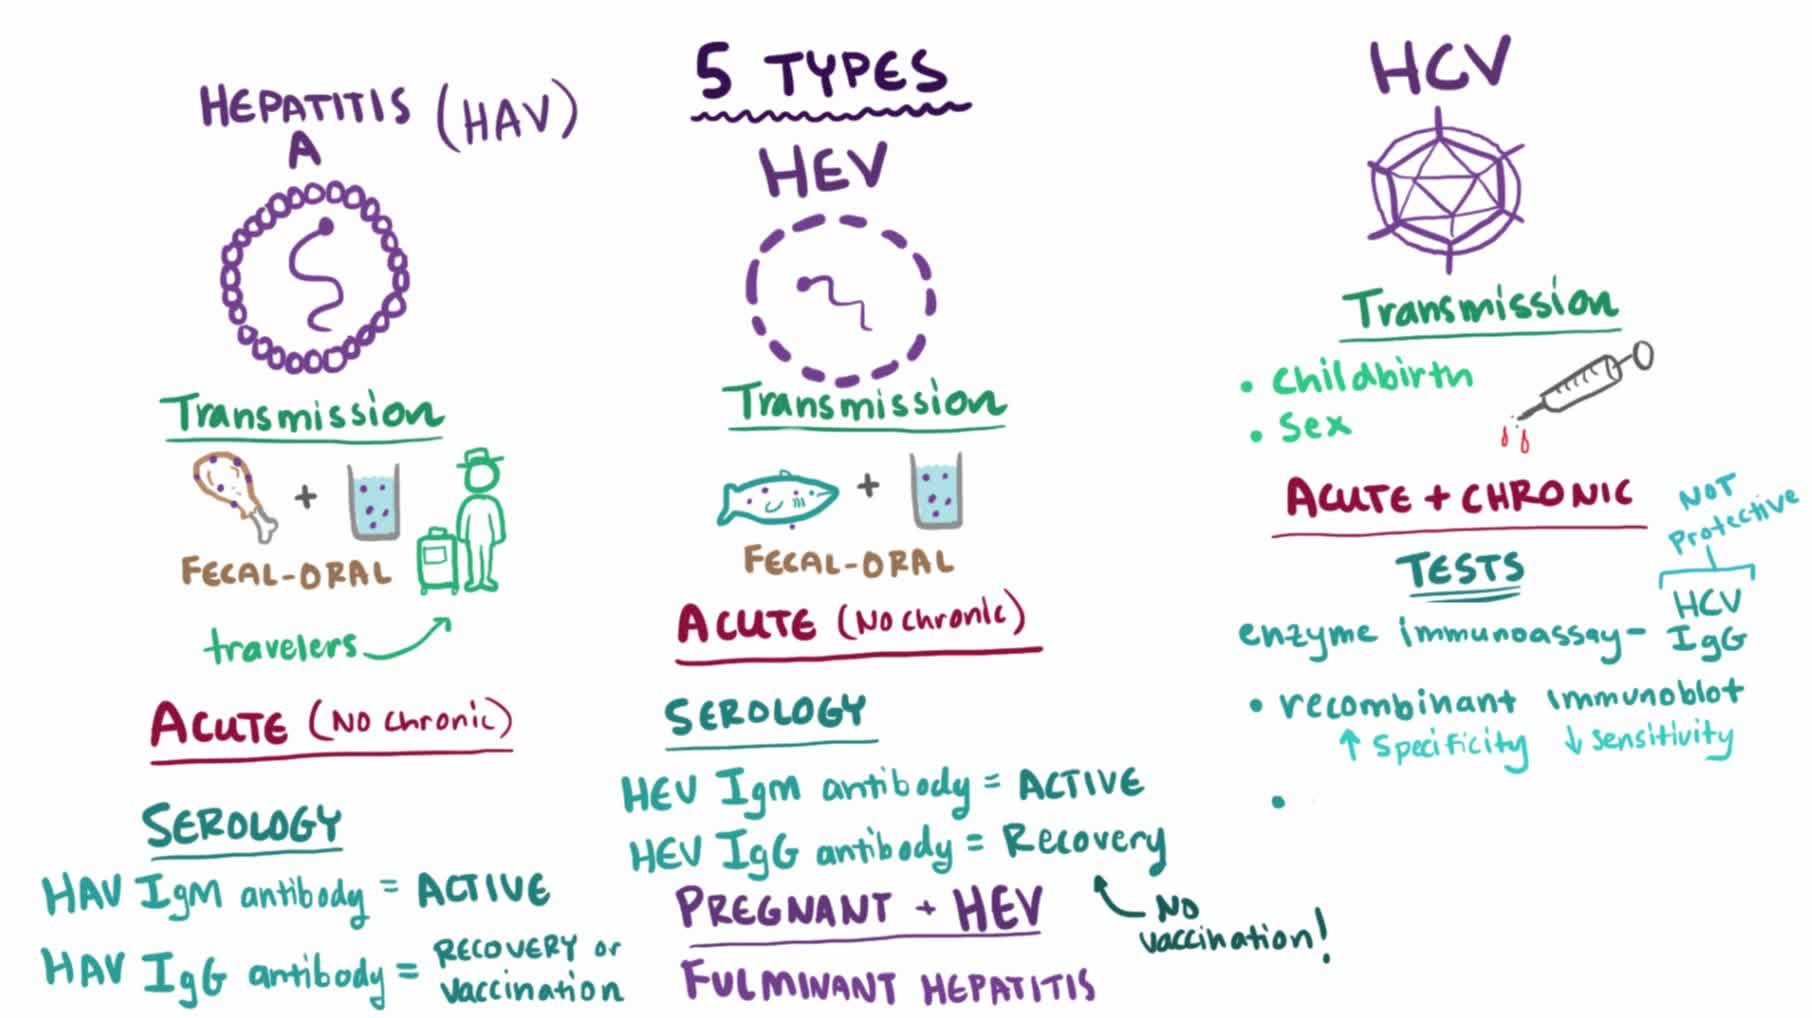 Hepatitis (Viral Hepatitis, A, B, C, D, E, G)